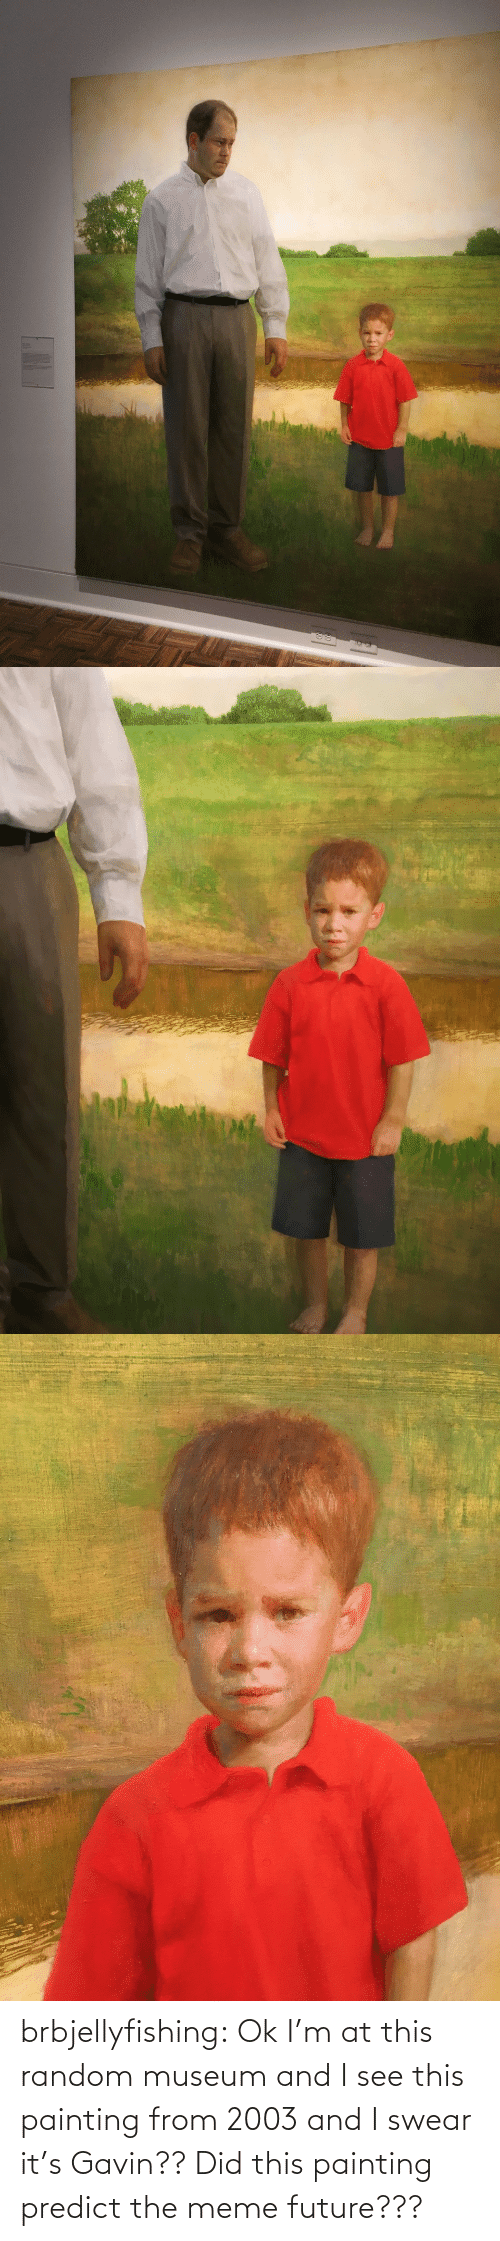 see: brbjellyfishing: Ok I'm at this random museum and I see this painting from 2003 and I swear it's Gavin?? Did this painting predict the meme future???